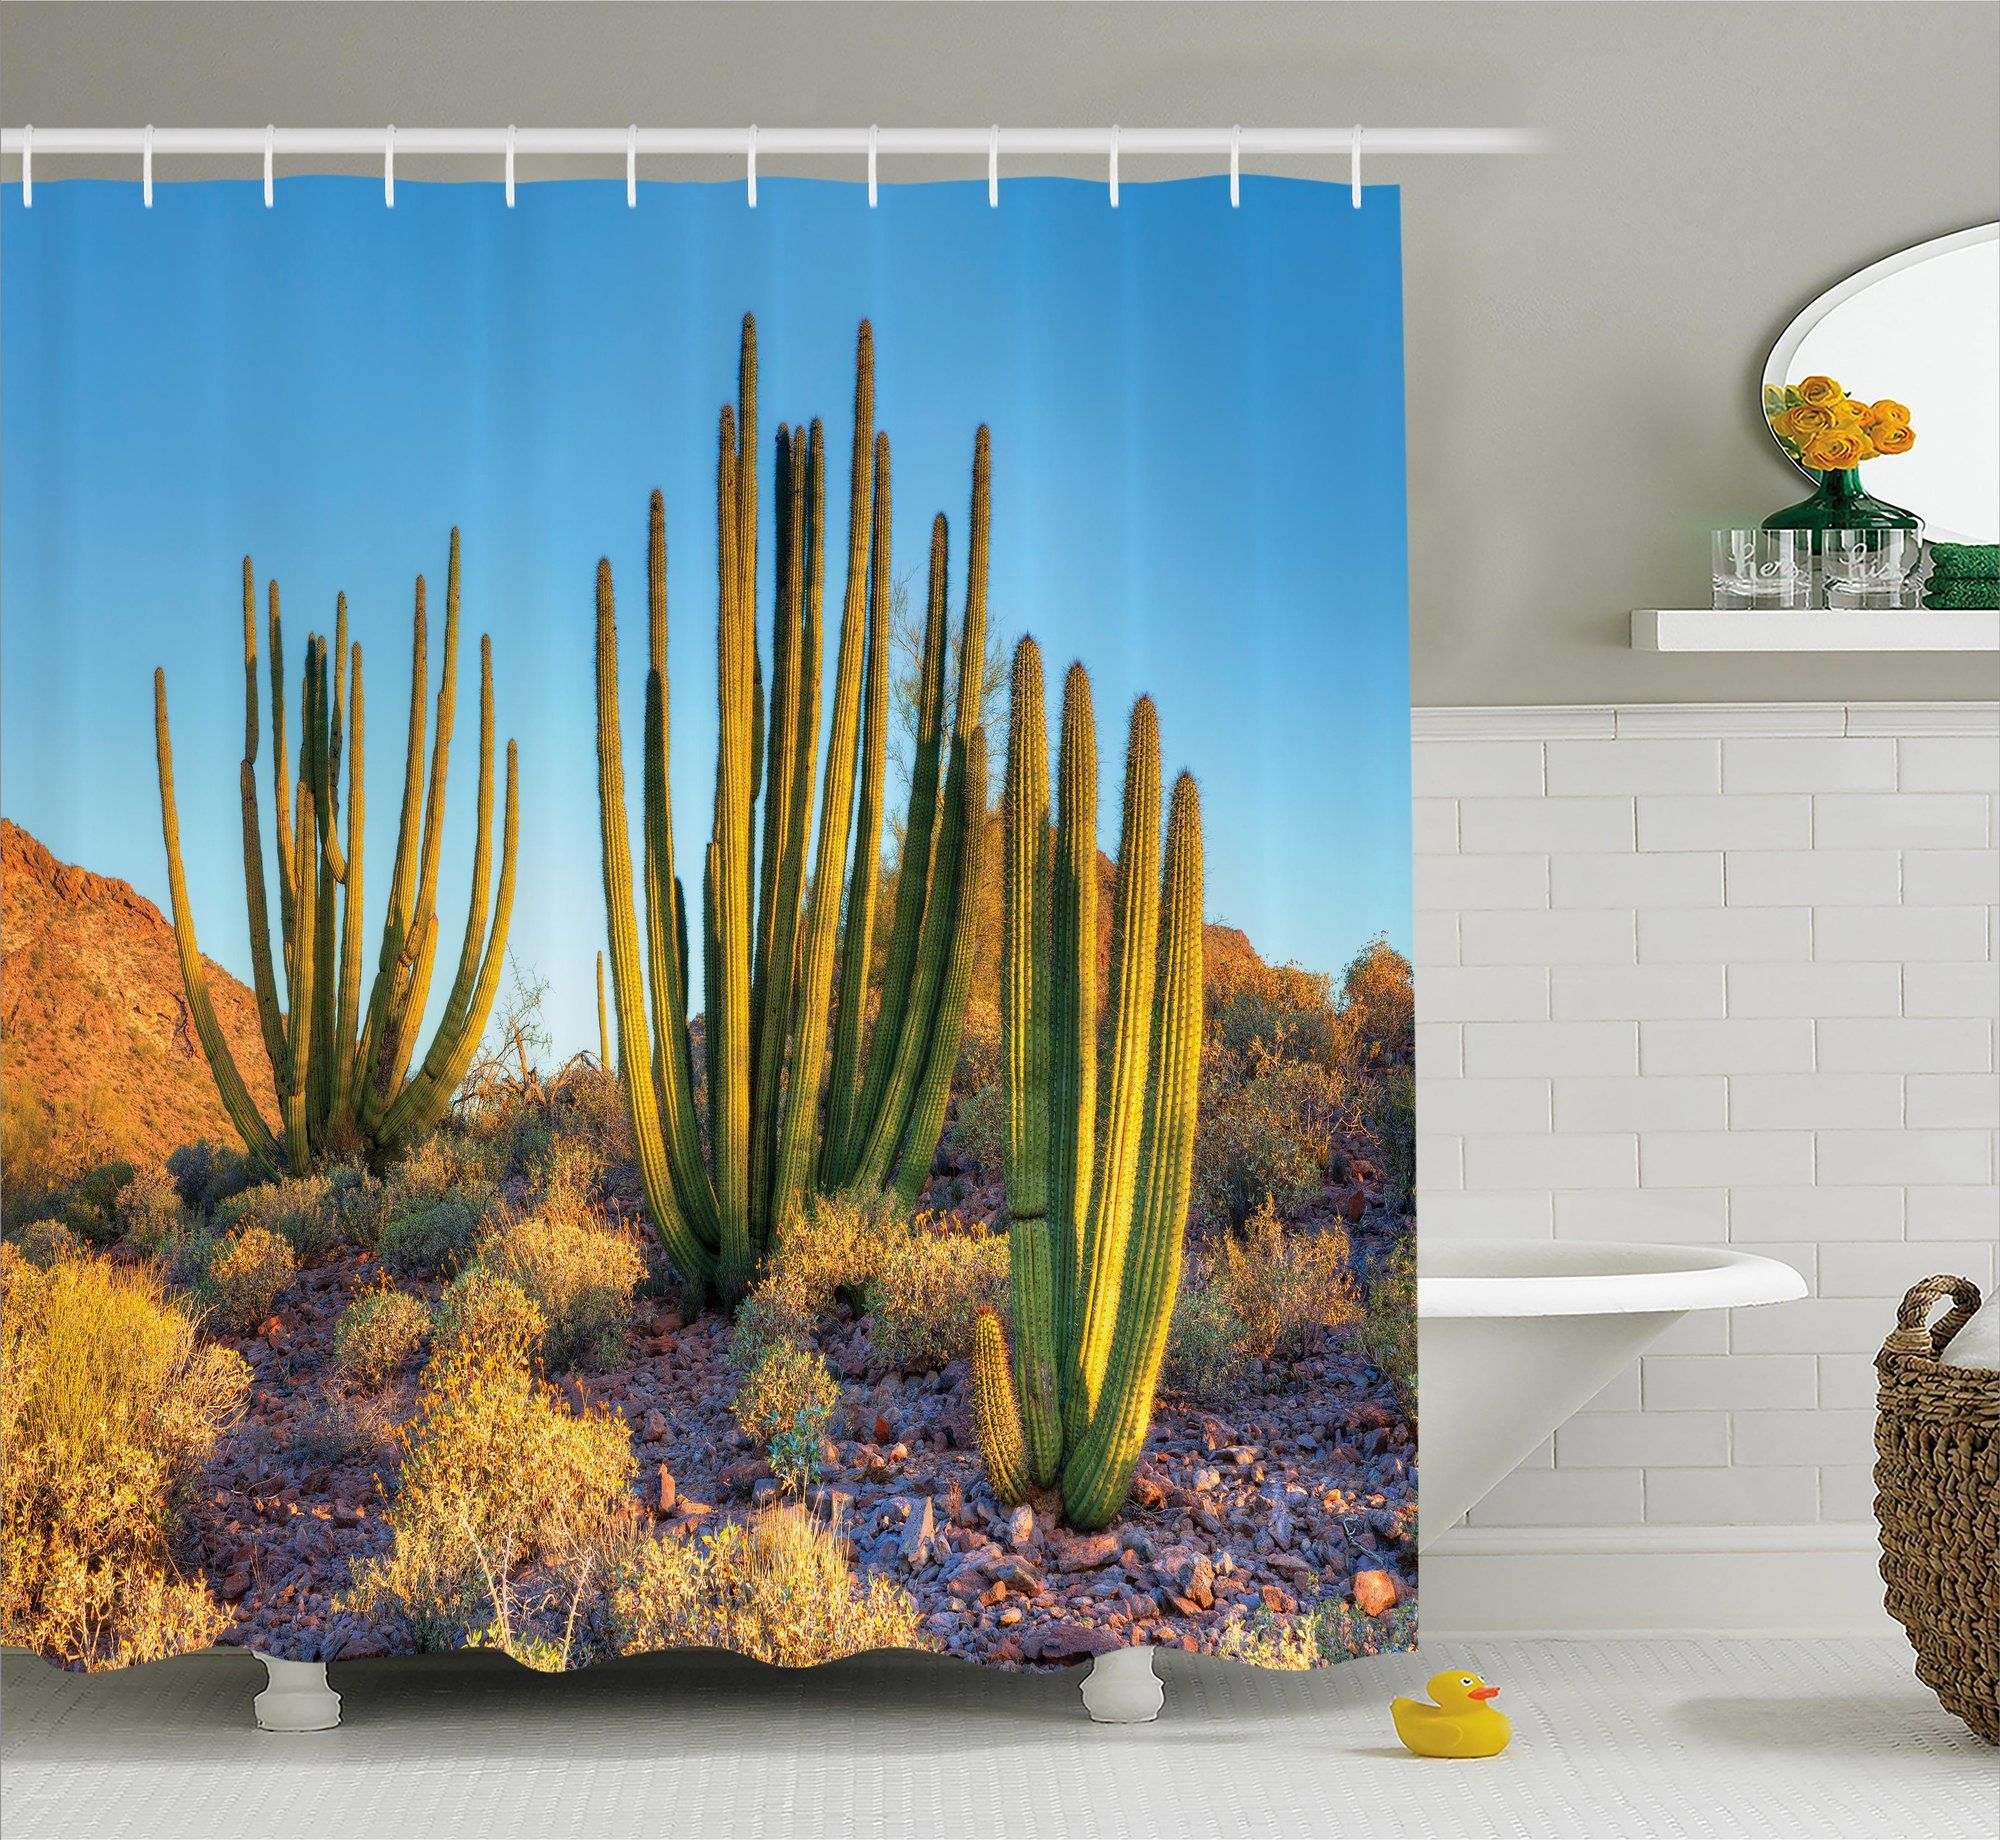 Avondale Photo of Nature Desert Cactus With Spikes and Mountains ...